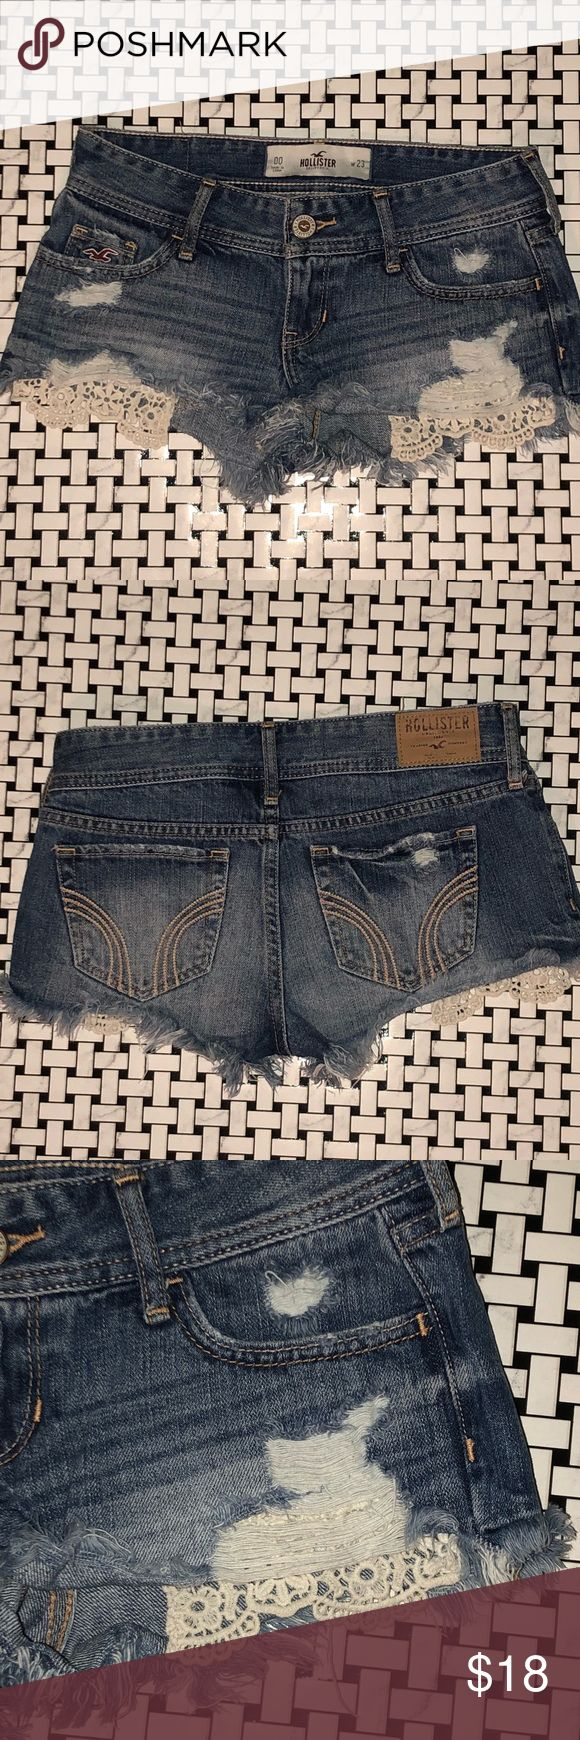 """Hollister Distressed and Lace jean shorts Hollister mini shorts Lace in pockets  Medium wash  Size 00 (waist 23"""") Hollister Shorts Jean Shorts"""